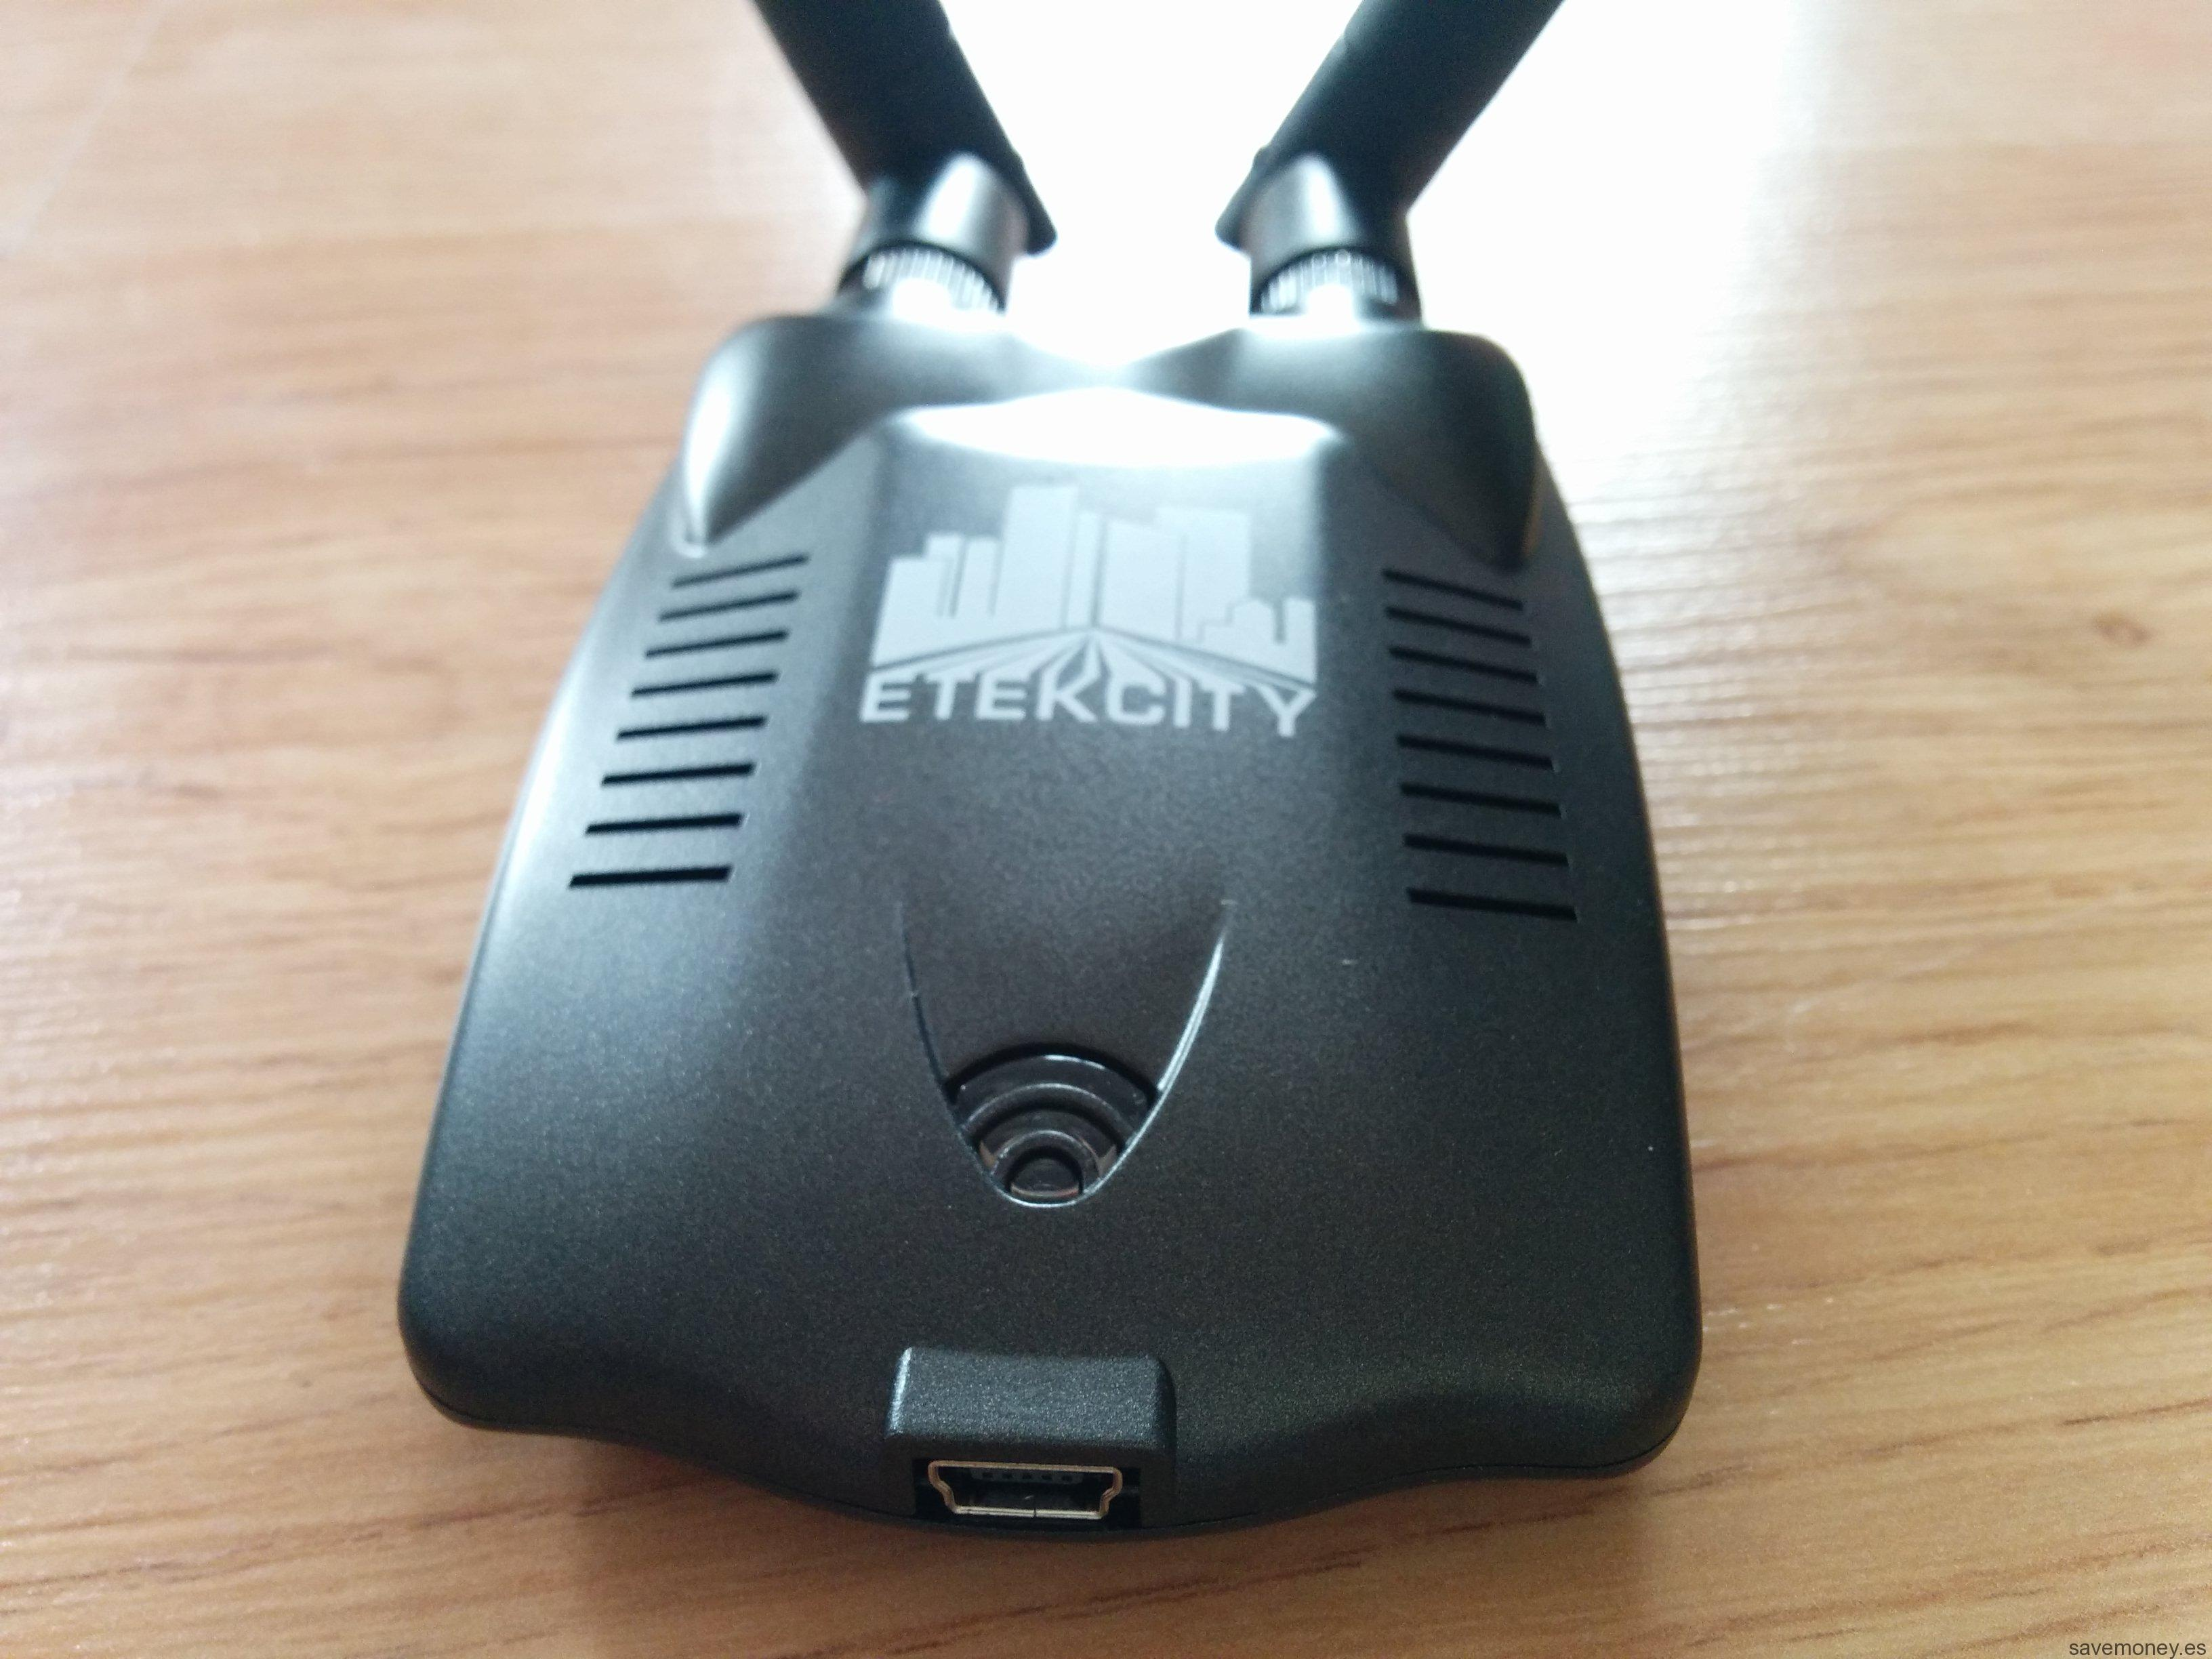 Unboxing Etekcity Dual Antenna Wireless USB Adapter